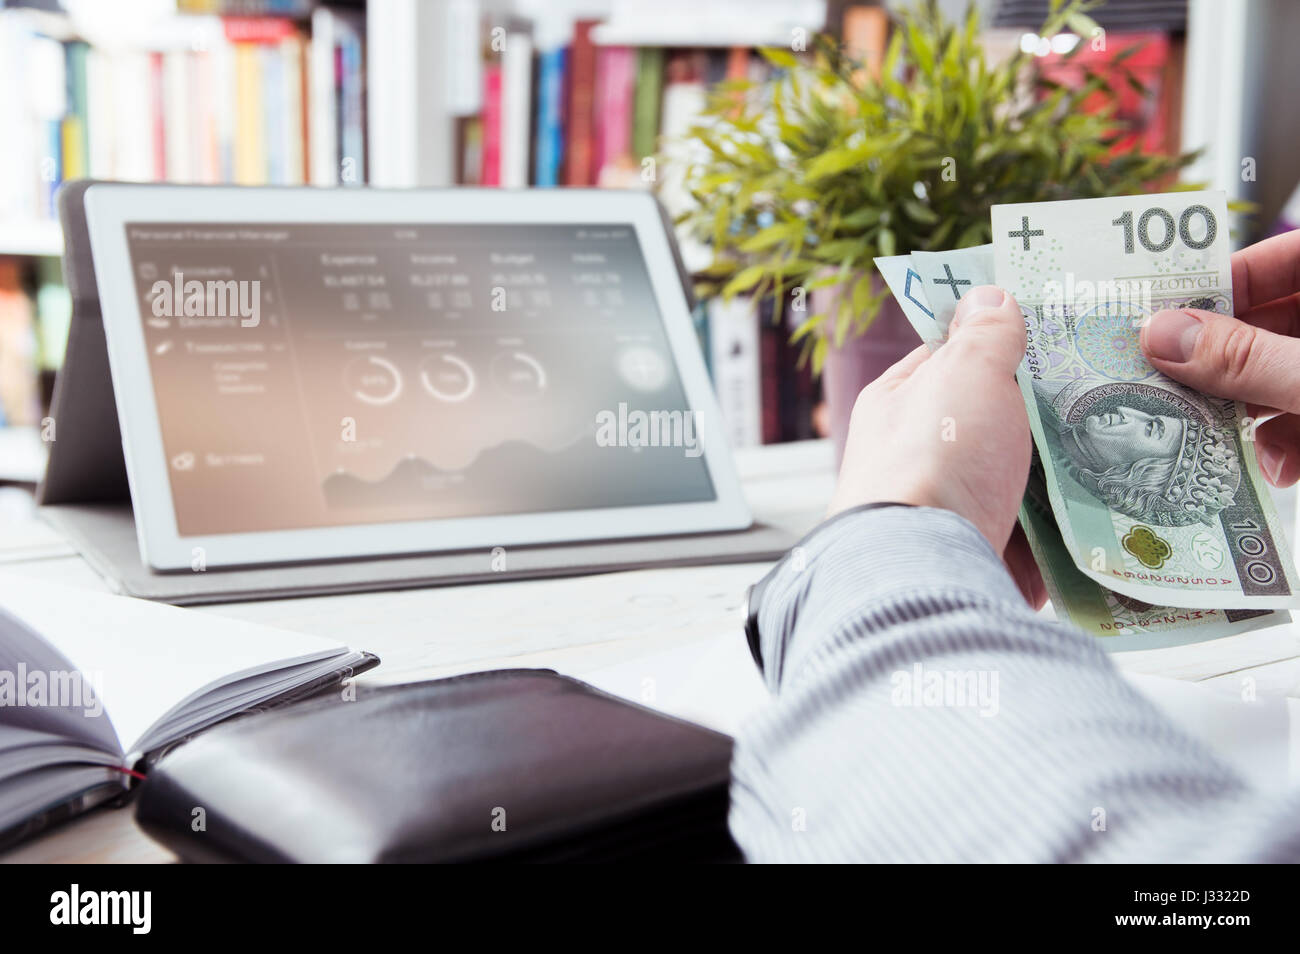 Man holds money. Personal finance manager application in background - Stock Image